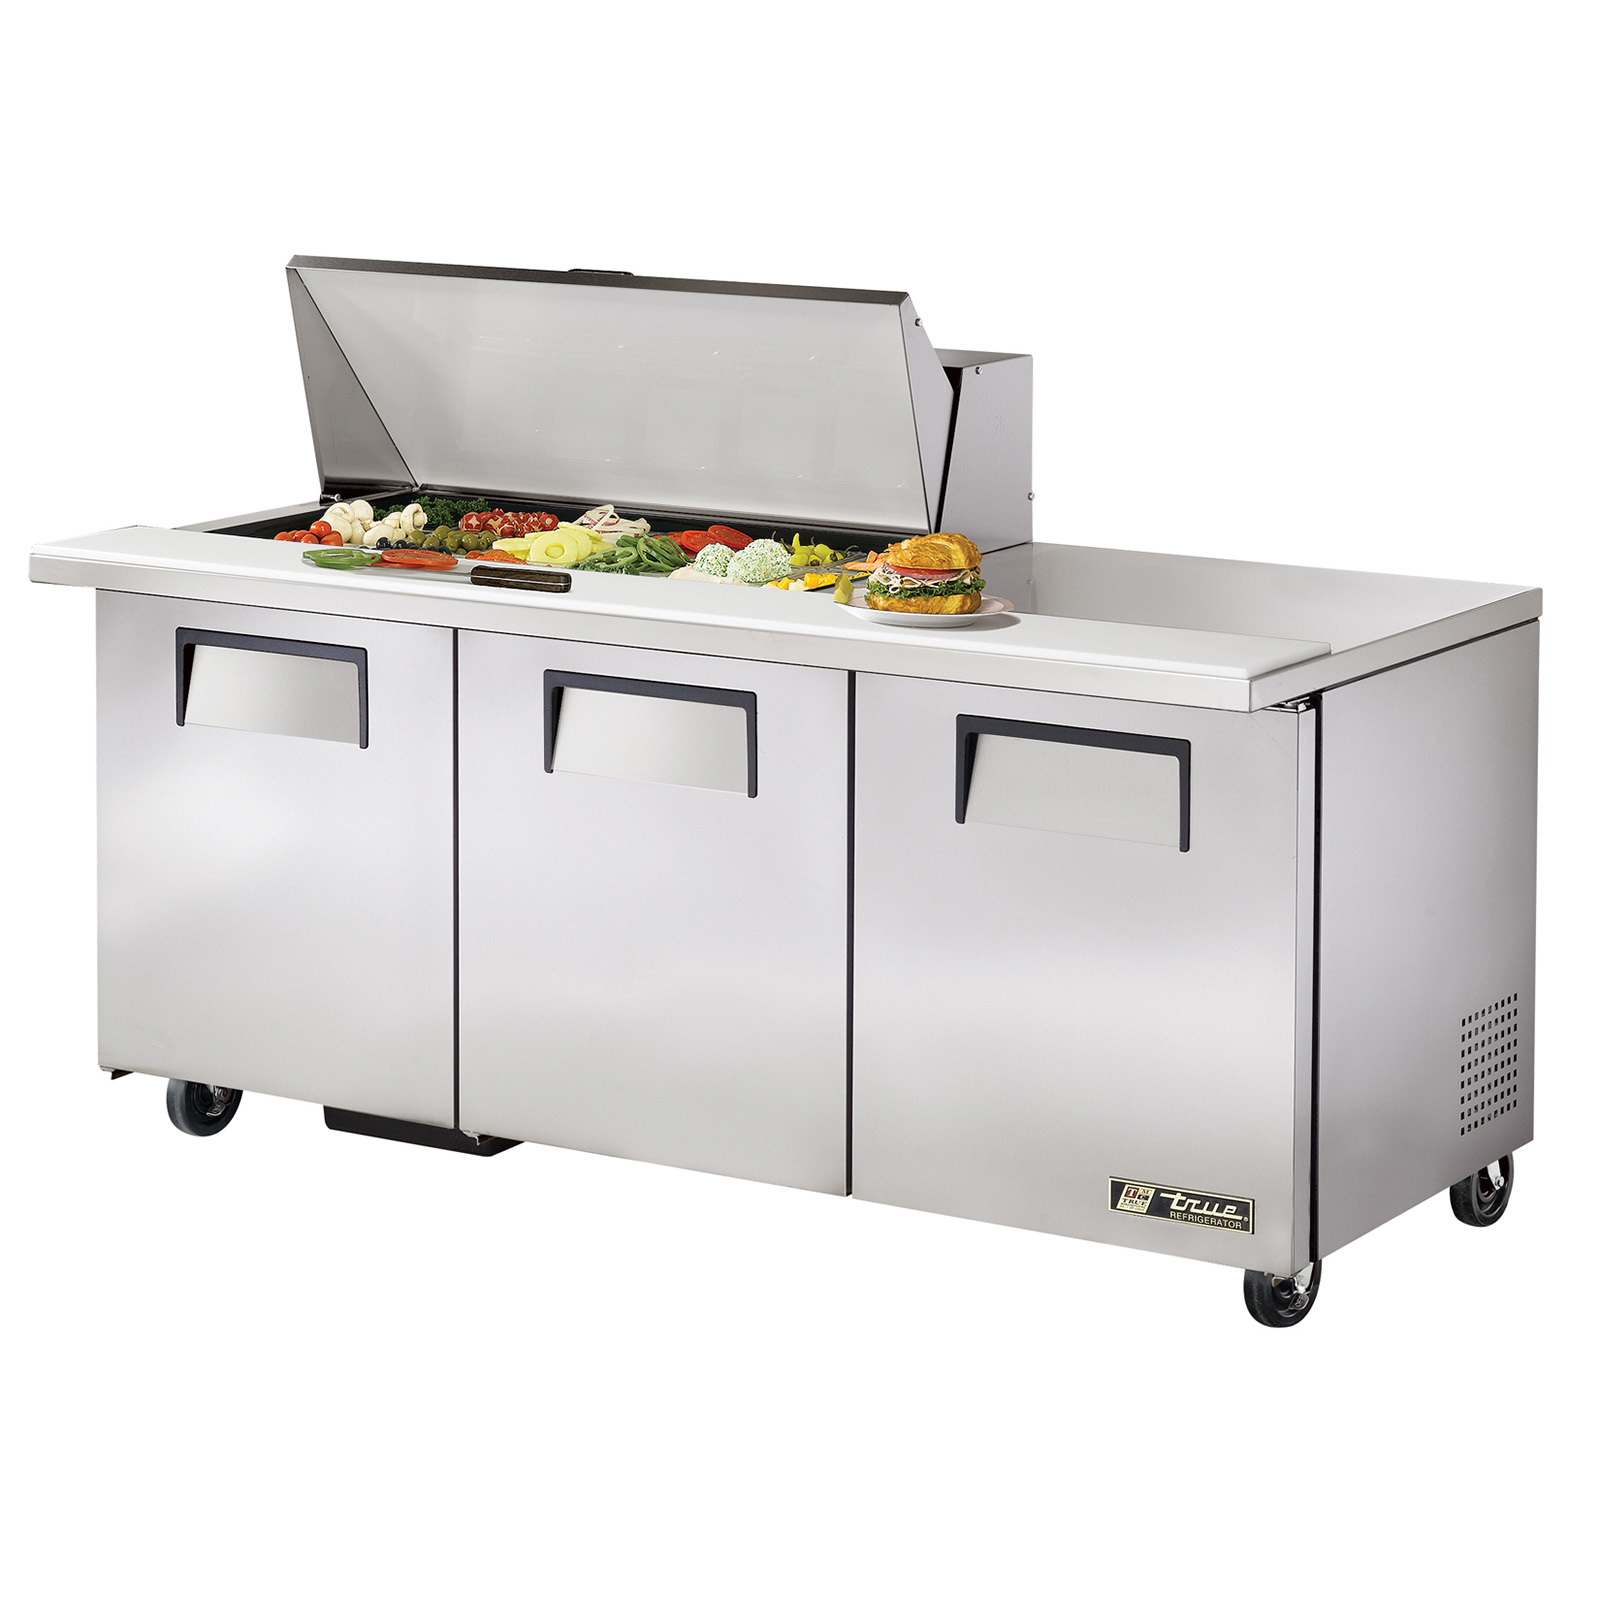 TSSU-72-18M-B True - Mega Top Sandwich/Salad Unit (18) 1/6 size (4